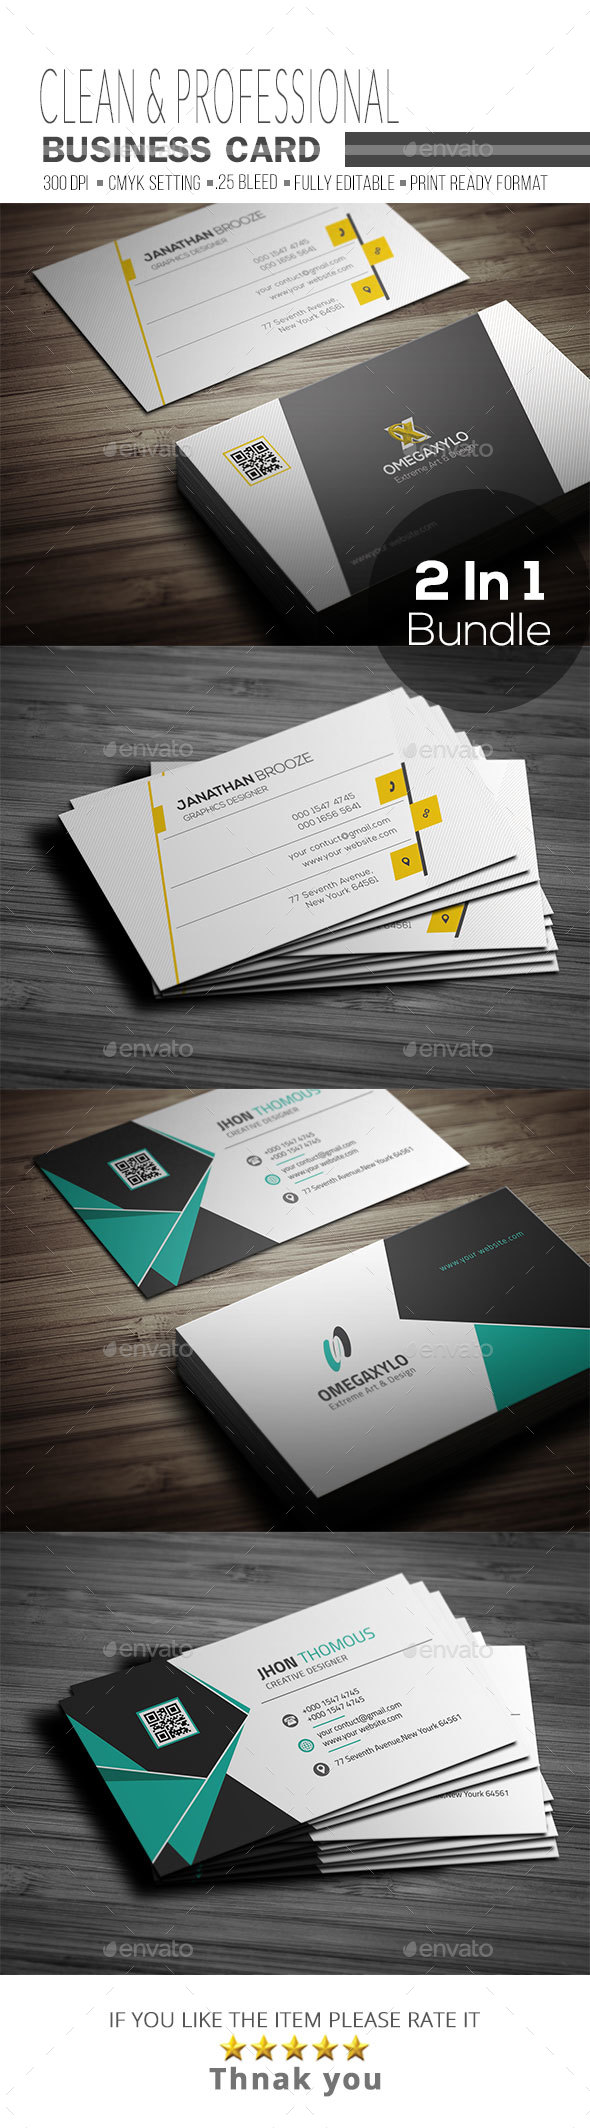 Business Card Bundle 2 In 1 - Corporate Business Cards